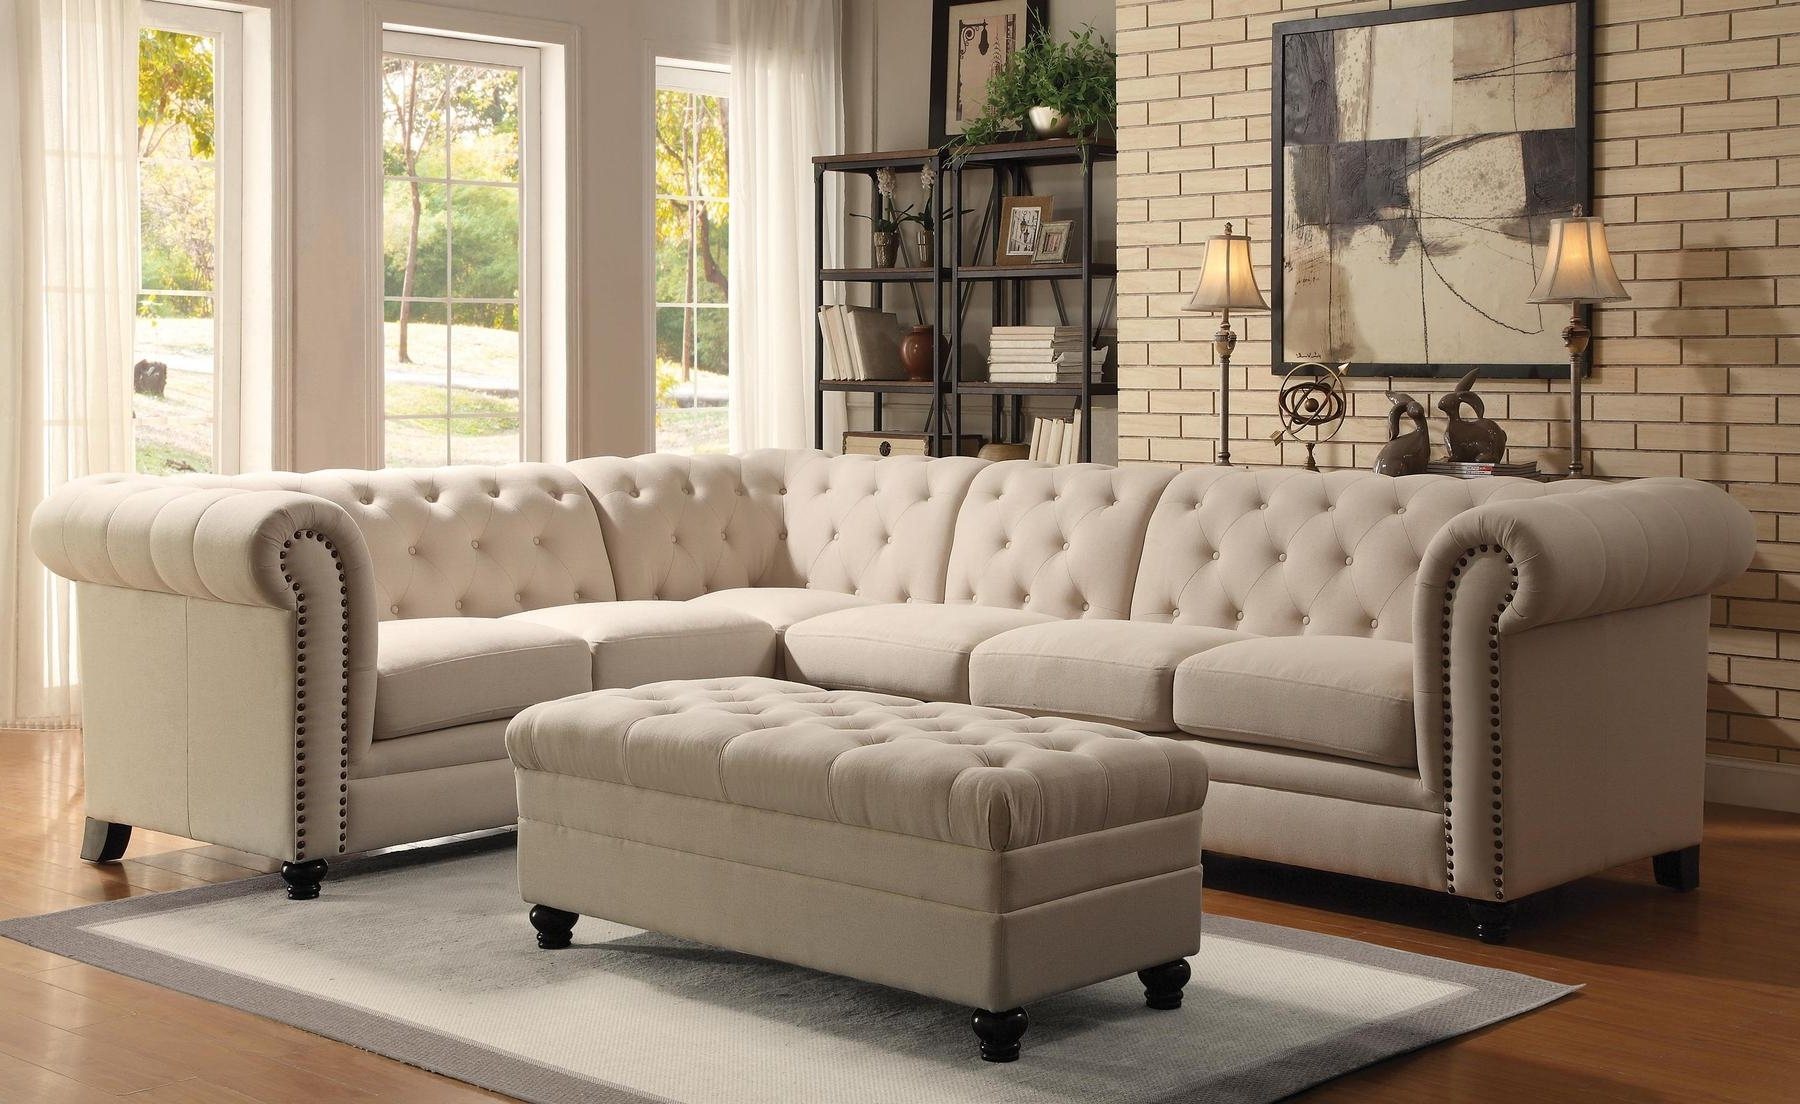 Roy Oatmeal Sectional Sofa 500222 Coaster Furniture Sectional With Regard To Most Up To Date Quality Sectional Sofas (View 14 of 15)